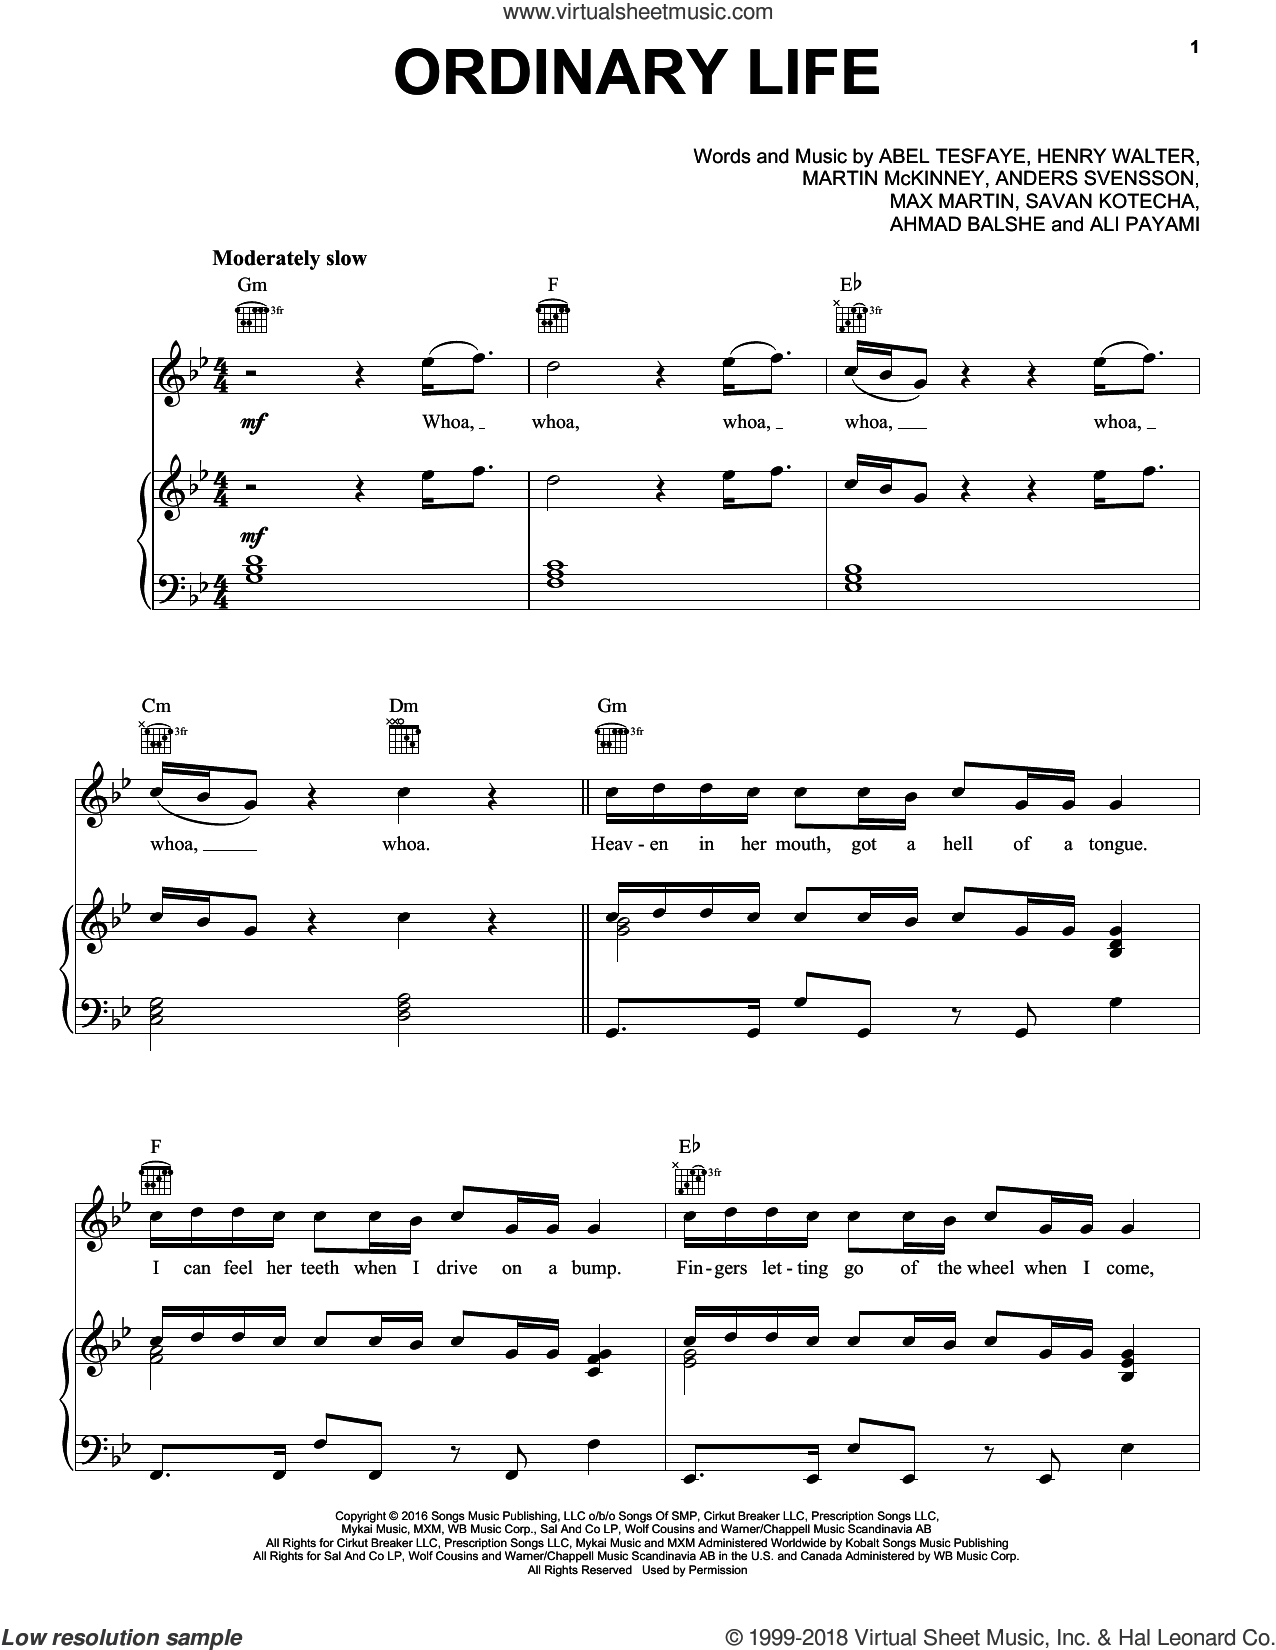 Ordinary Life sheet music for voice, piano or guitar by The Weeknd, Ali Payami, Henry Walter, Max Martin and Savan Kotecha. Score Image Preview.